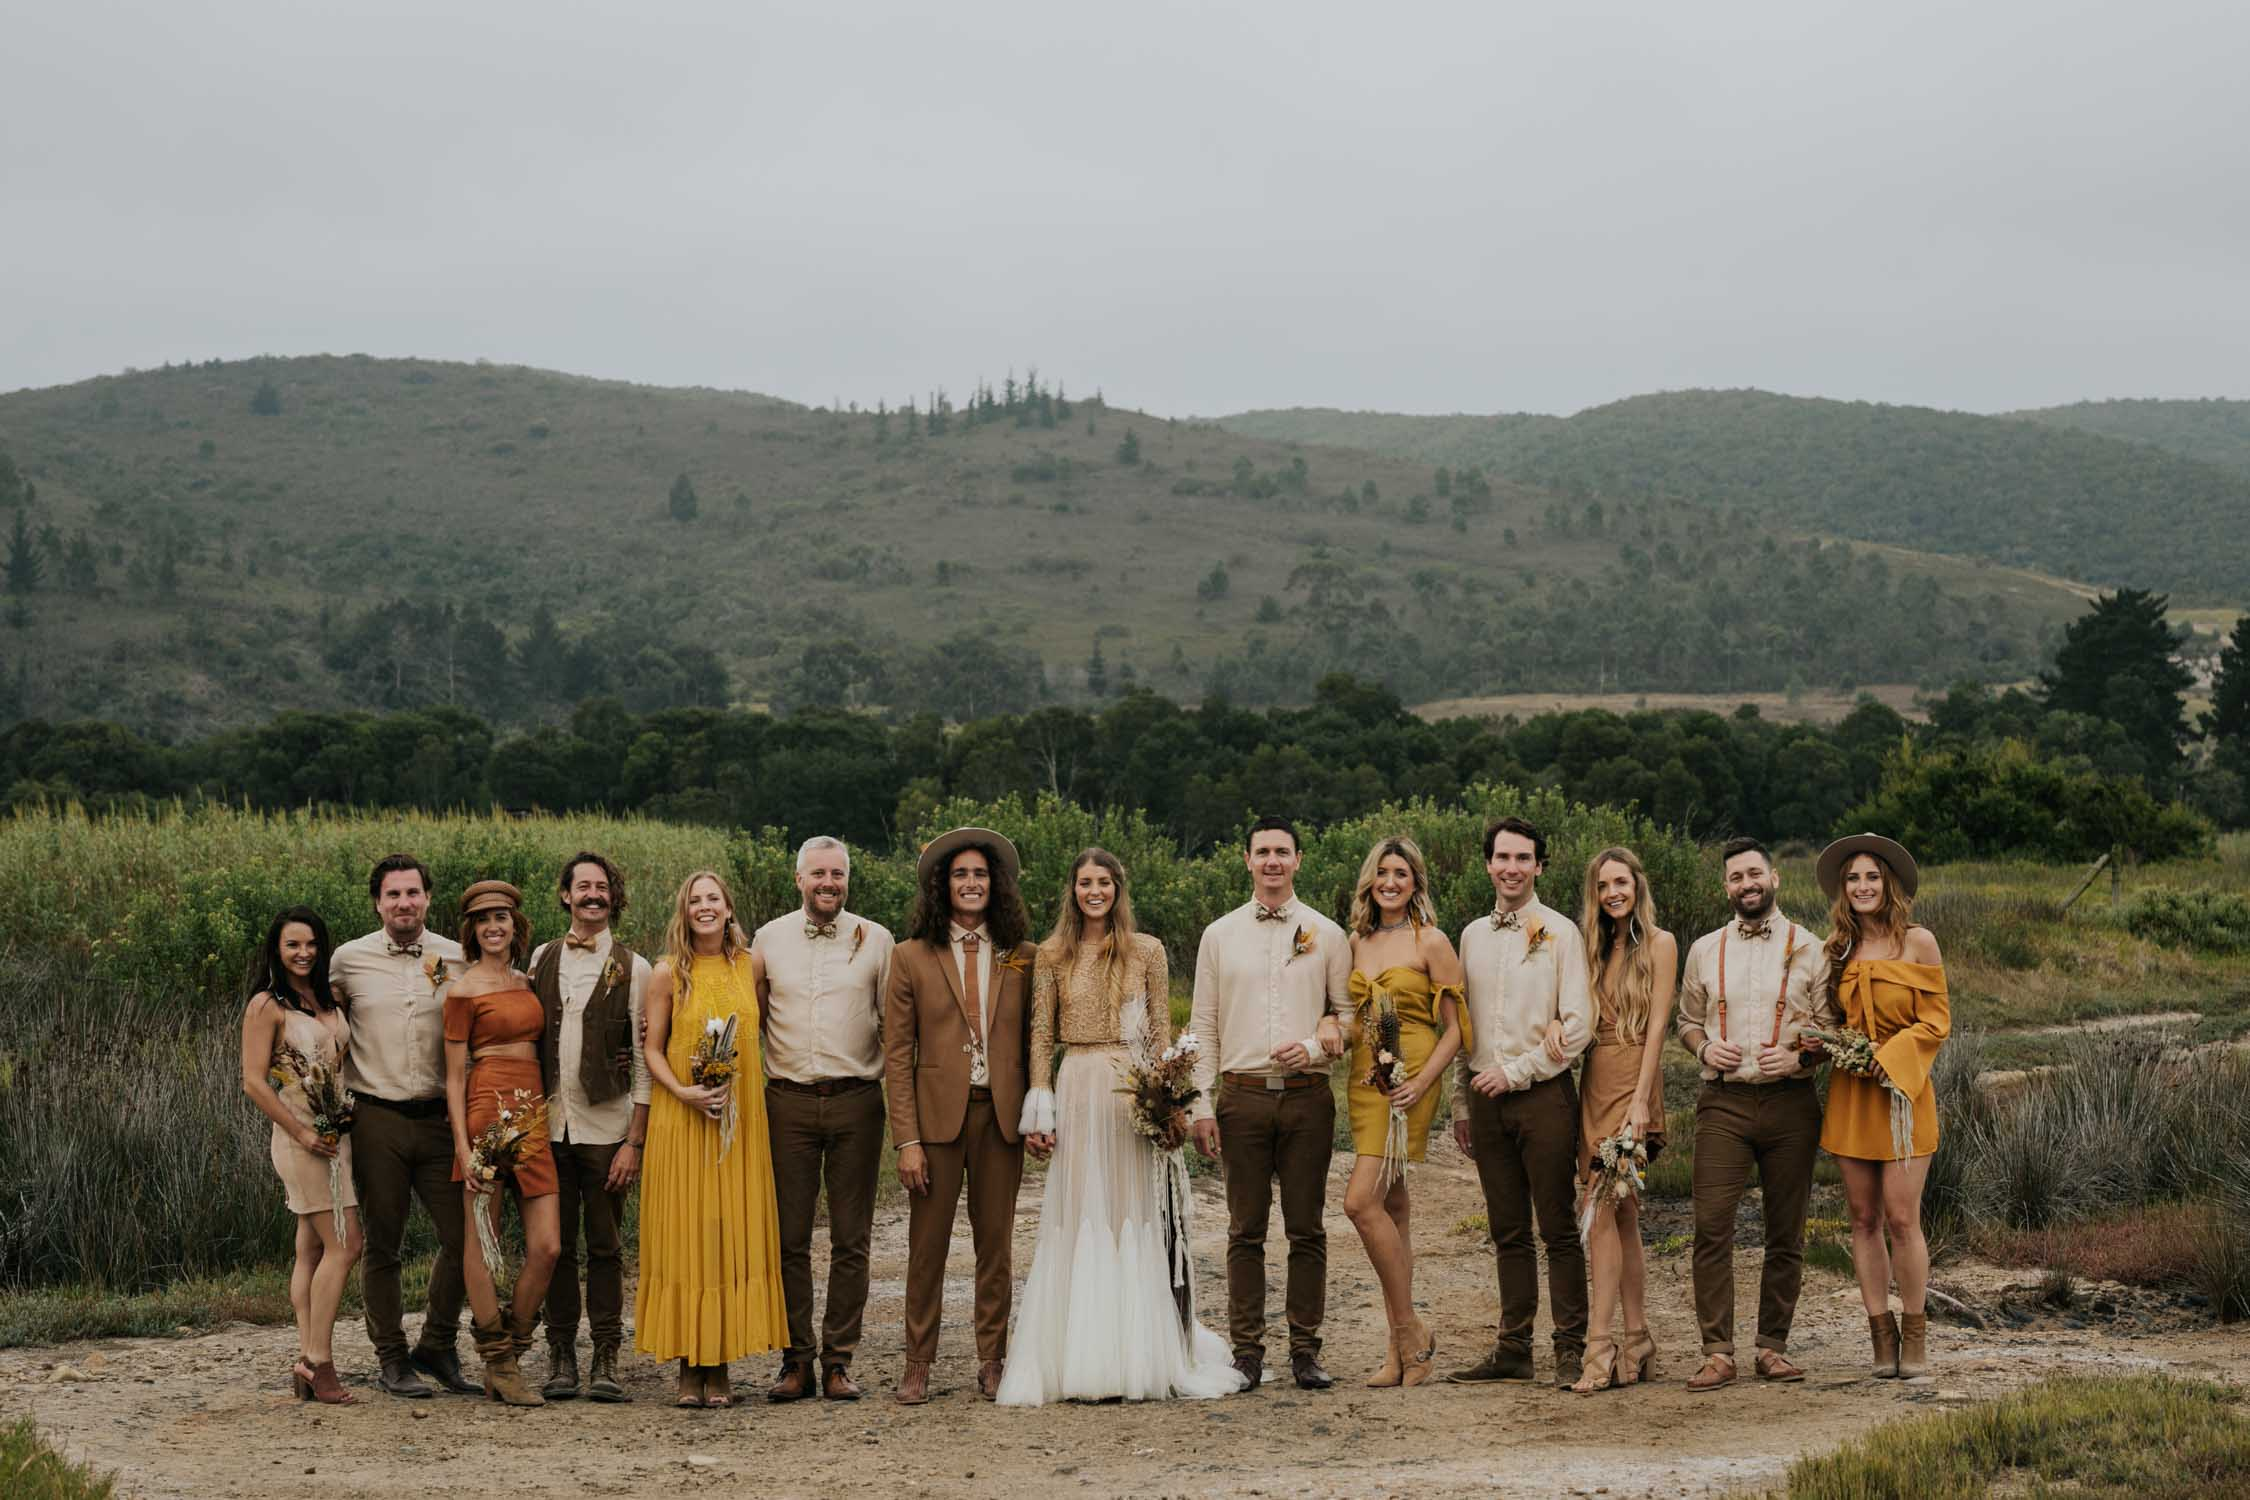 The ultimate boho gypsy bridal party wearing gypsy sunshine and rust coloured dresses, hats and brown suits in at destination wedding in Vancouver